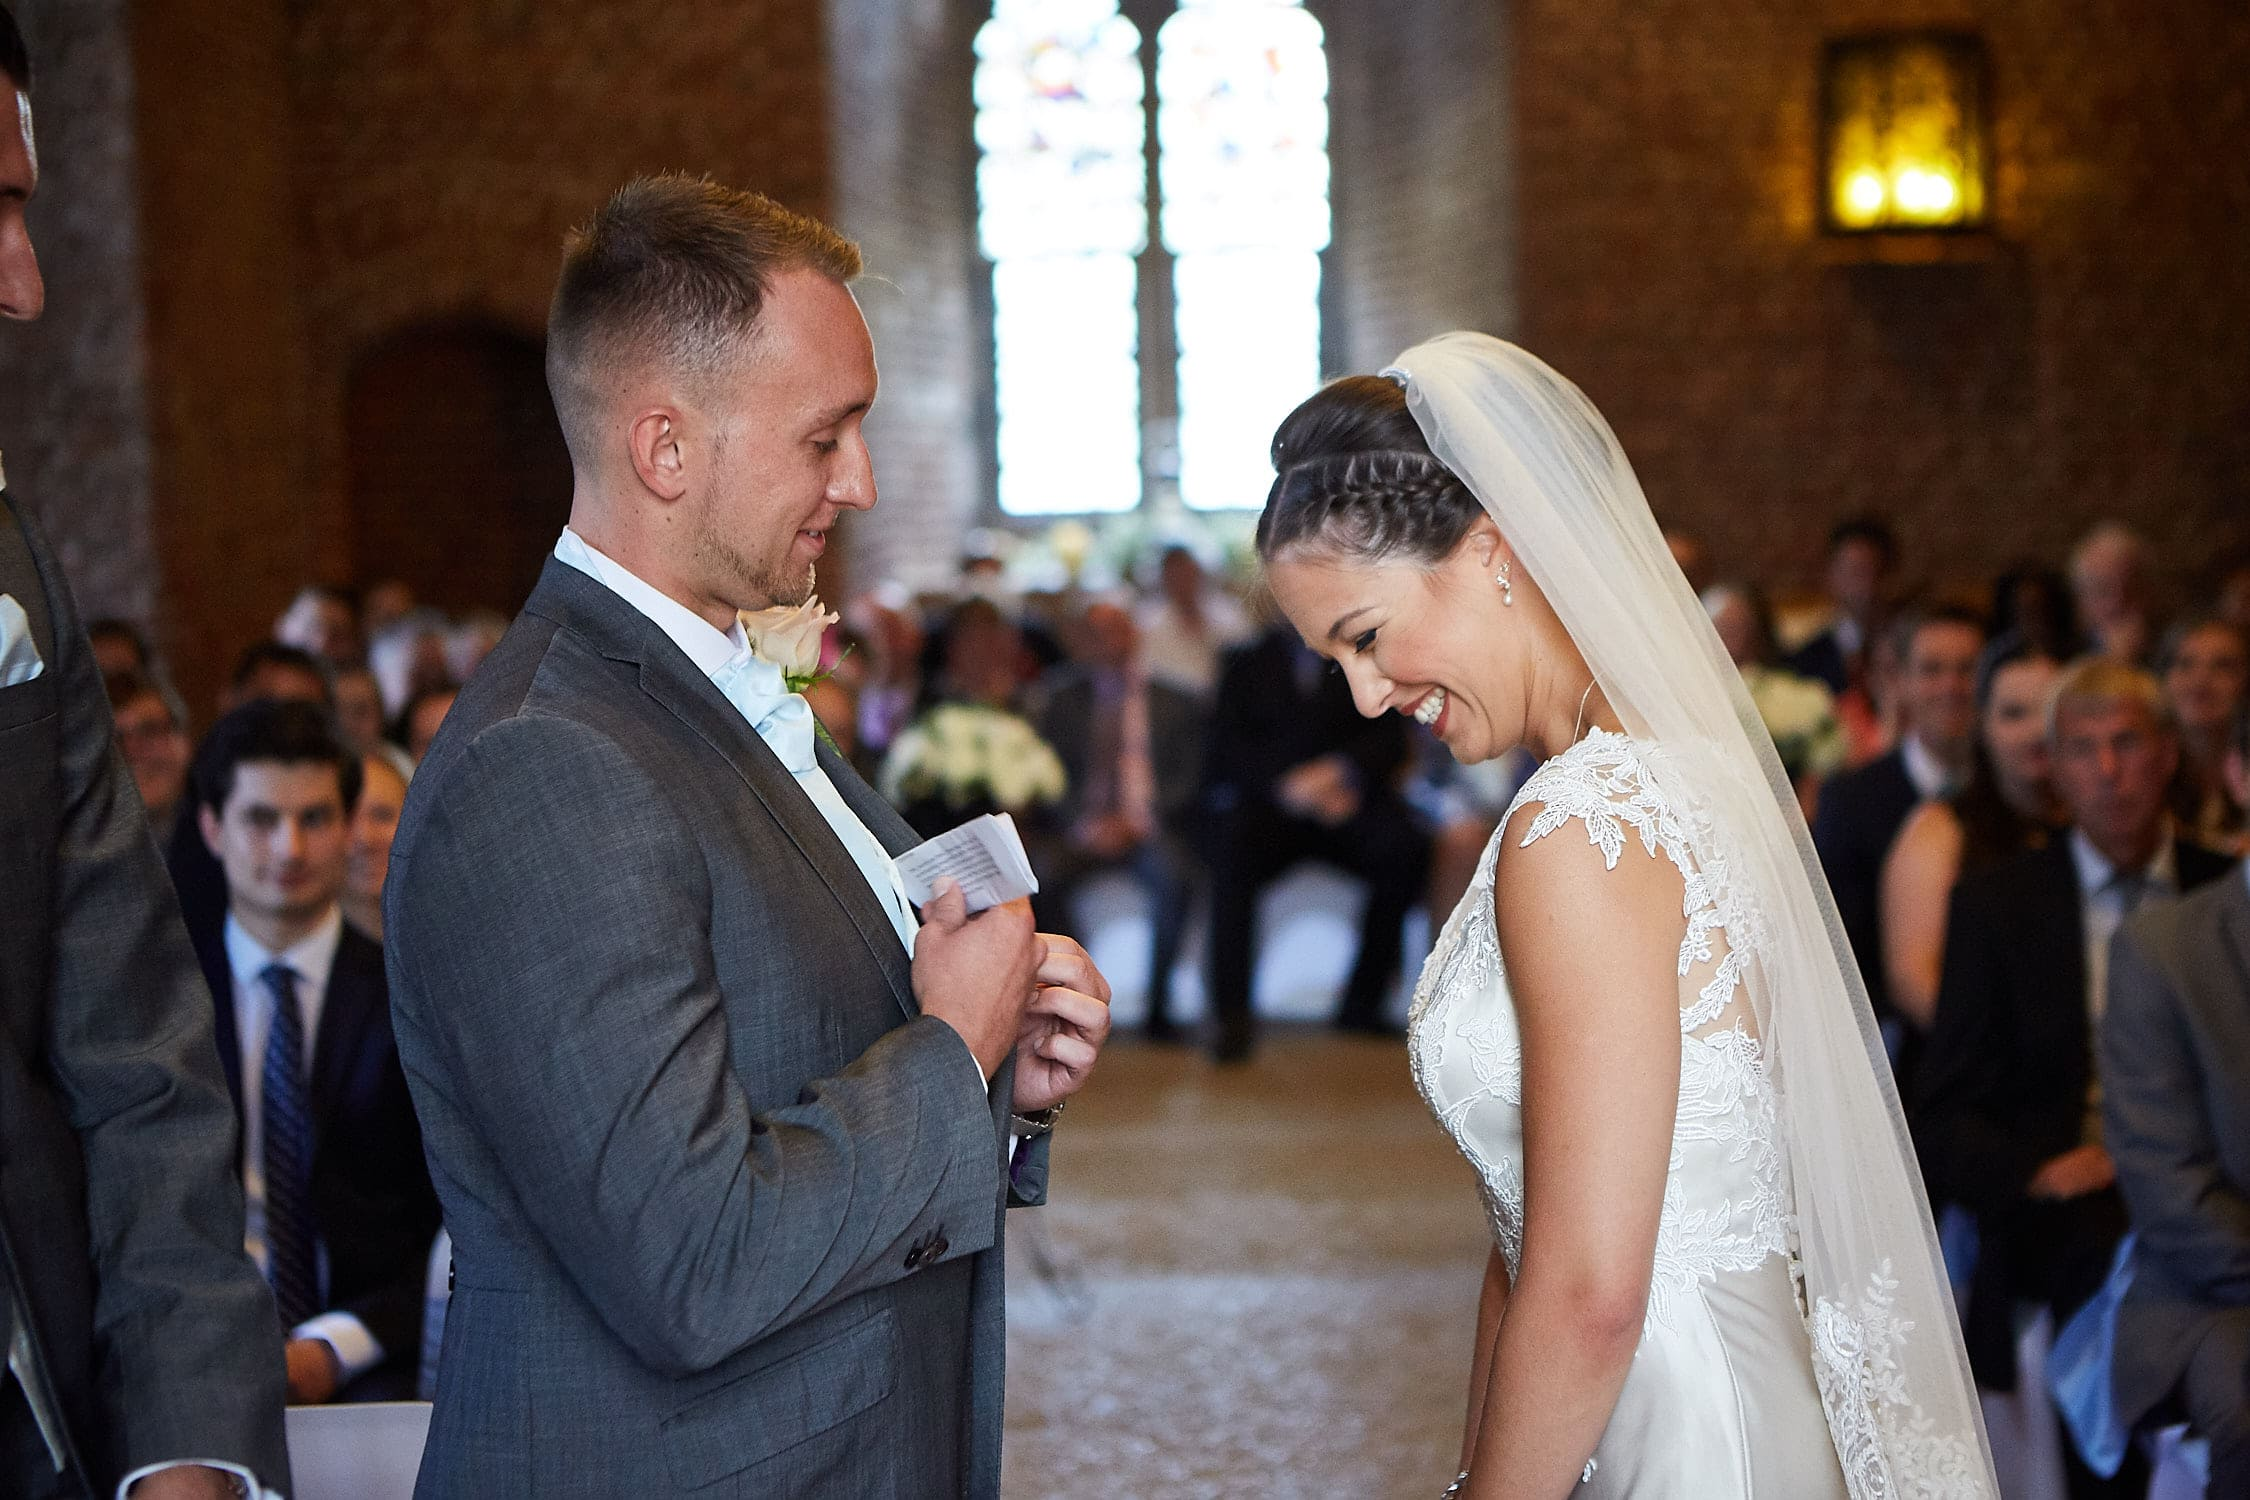 A groom pulls out his vows whilst his bride laughs